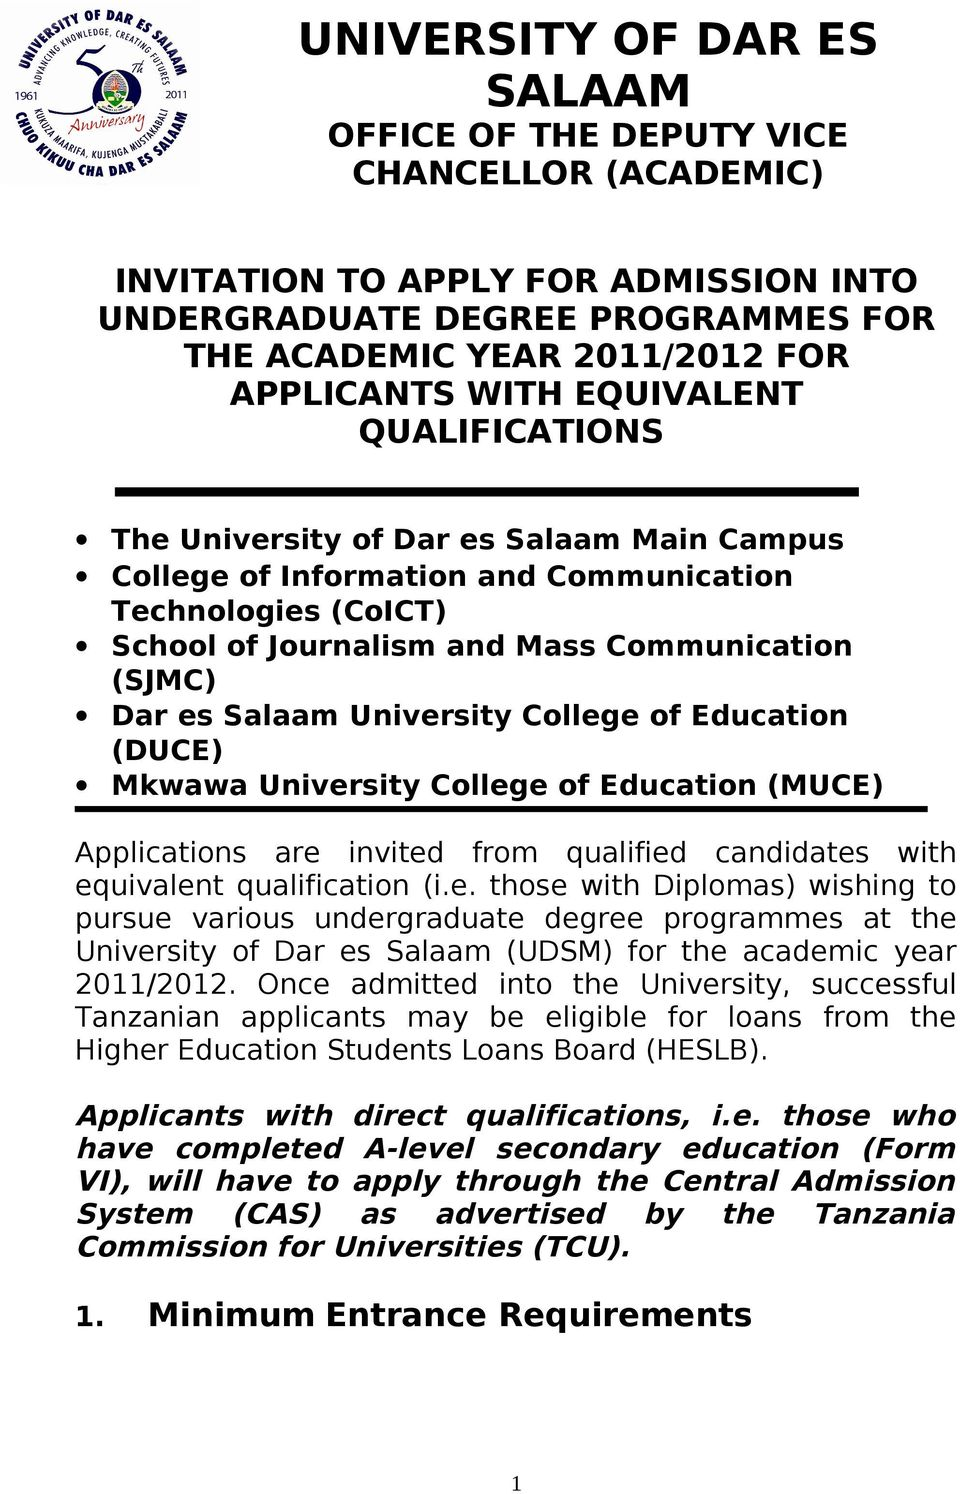 University College of Education (DUCE) Mkwawa University College of Education (MUCE) Applications are invited from qualified candidates with equivalent qualification (i.e. those with Diplomas) wishing to pursue various undergraduate degree programmes at the University of Dar es Salaam (UDSM) for the academic year 2011/2012.